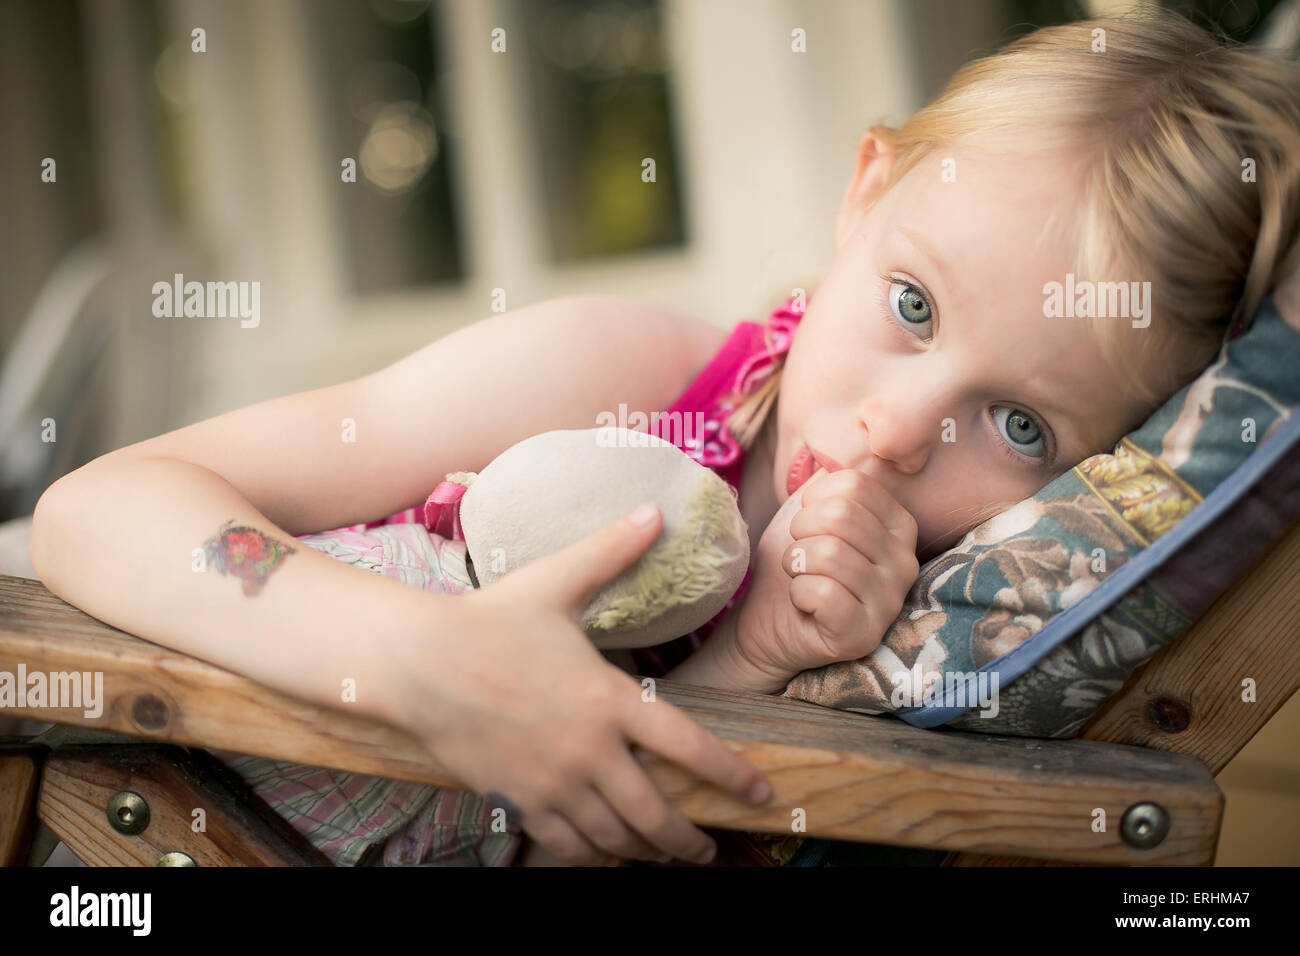 Girl lying in a chair sucking her thumb - Stock Image